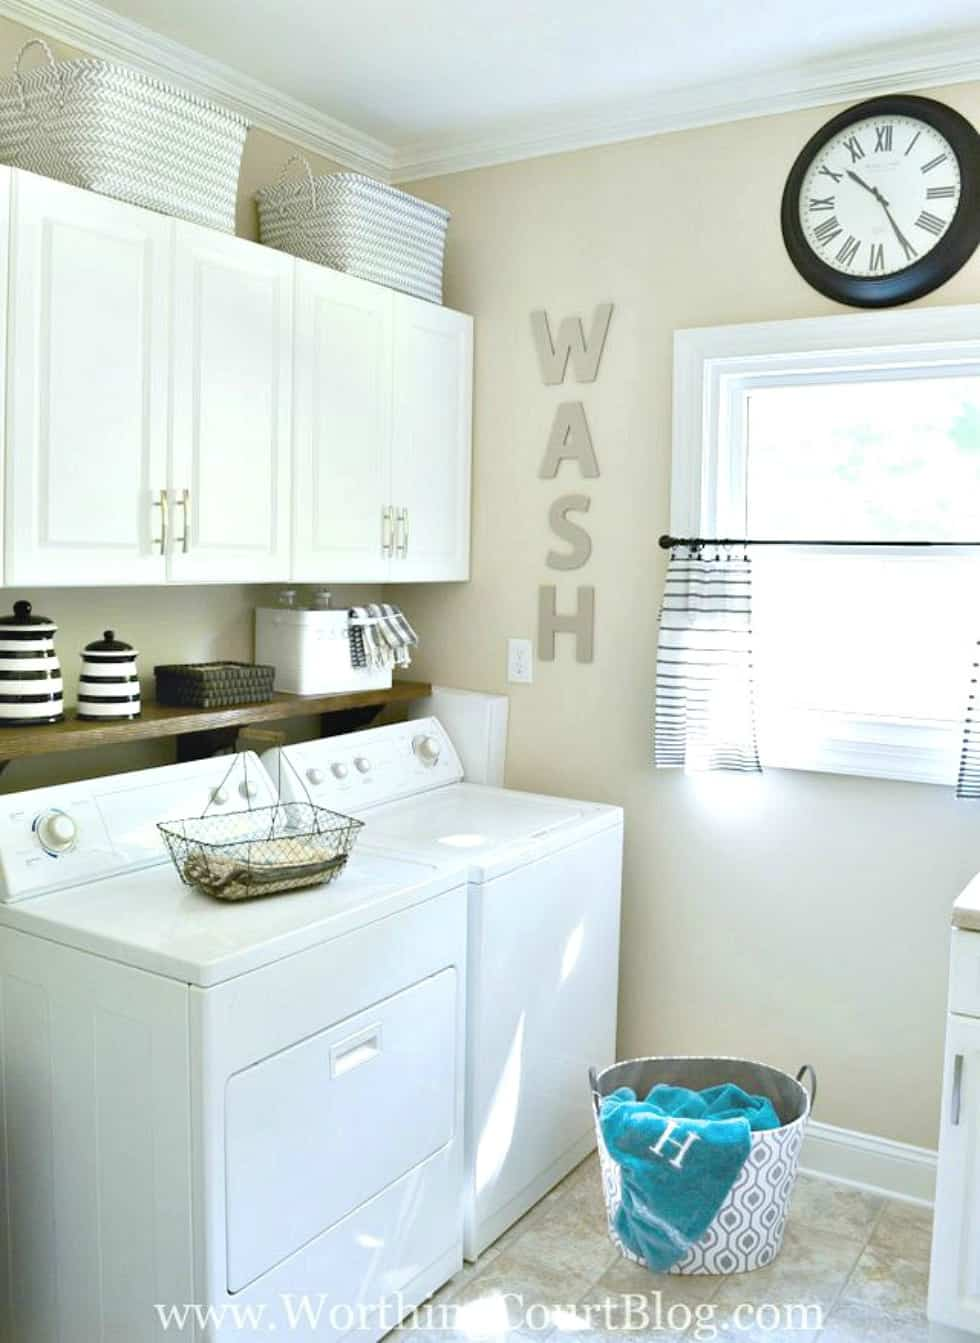 Laundry room remodel with before and after's || Worthing Court